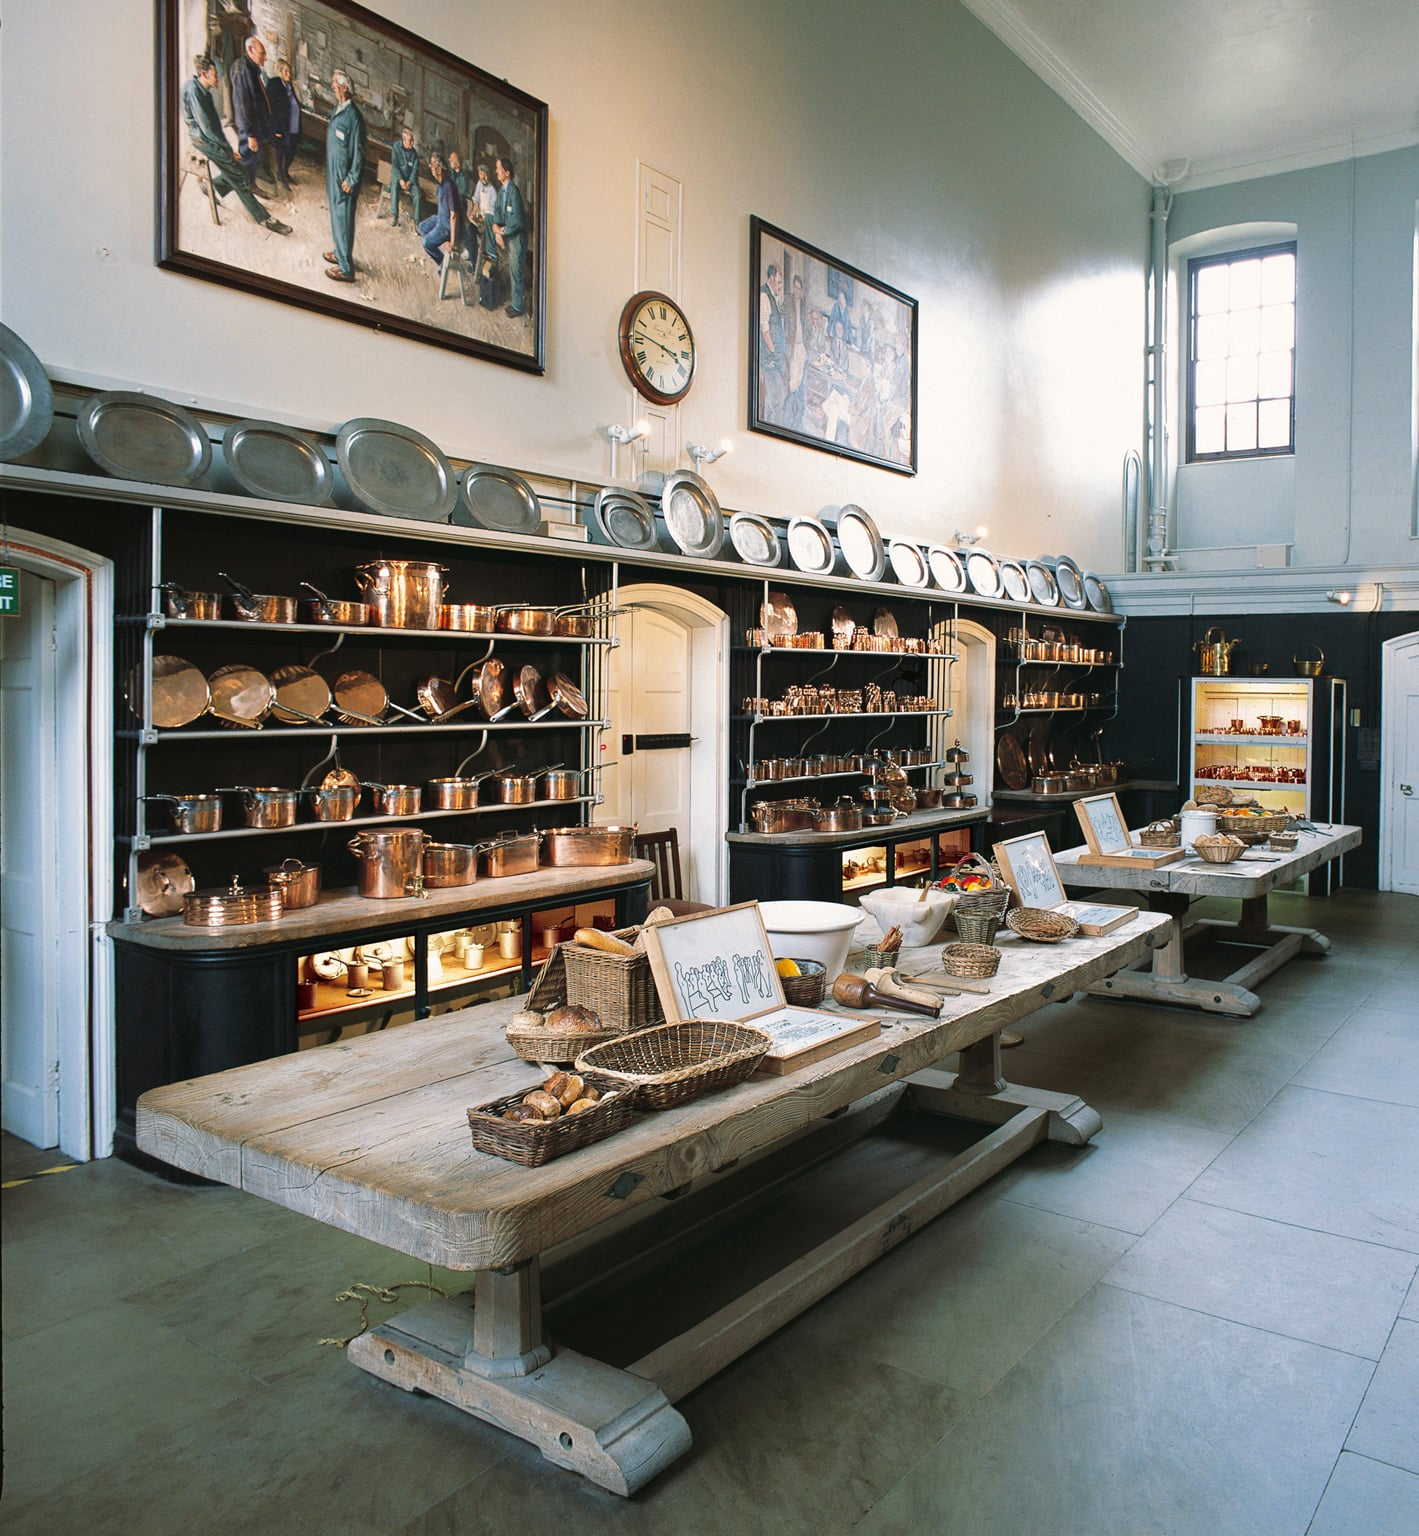 The Old Kitchen first came into use in 1757 and was used up until the Second World War